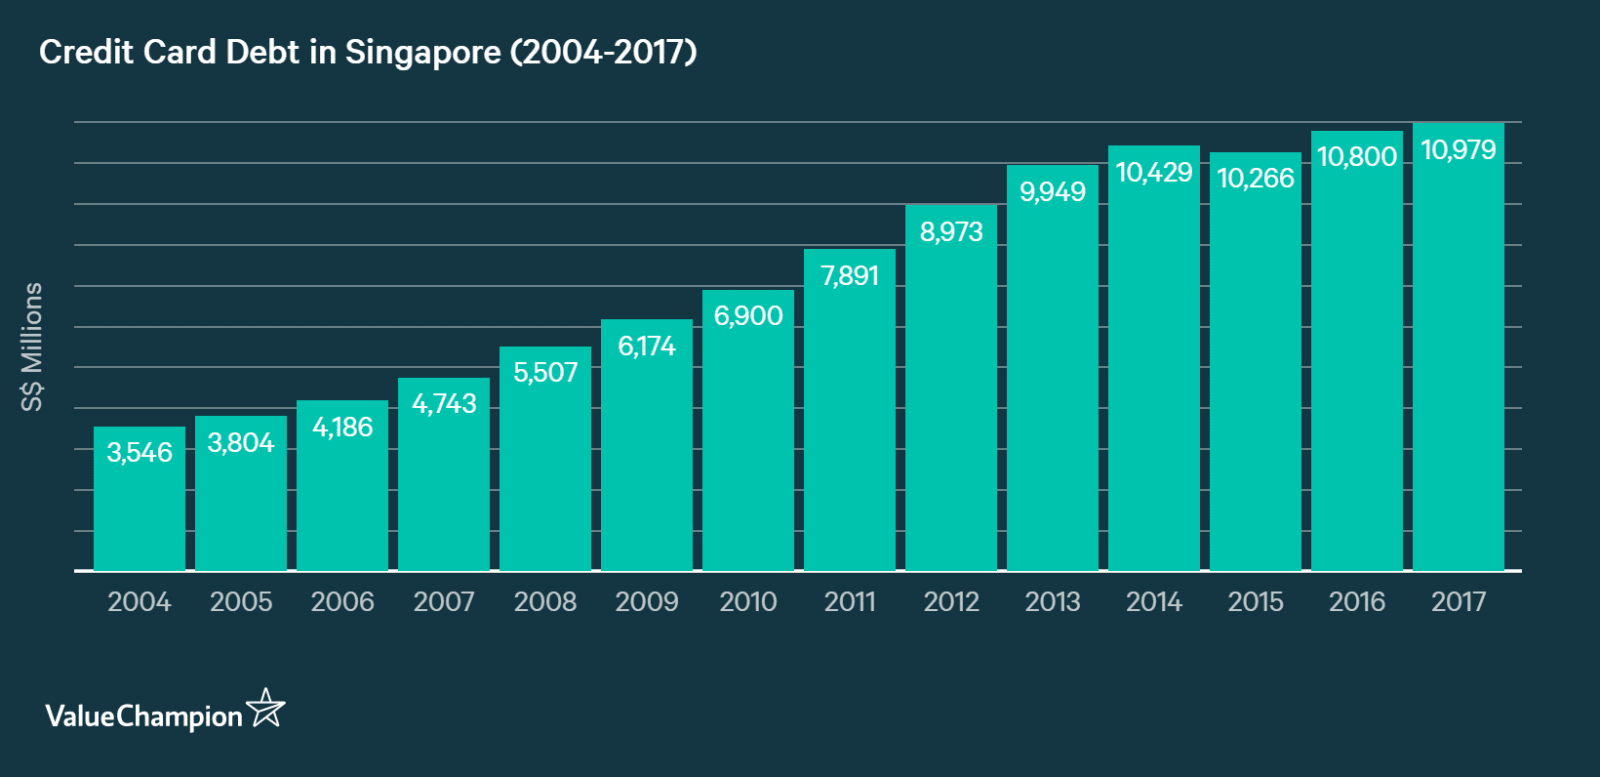 Growth of outstanding credit card debt in Singapore from 2005 to 2017